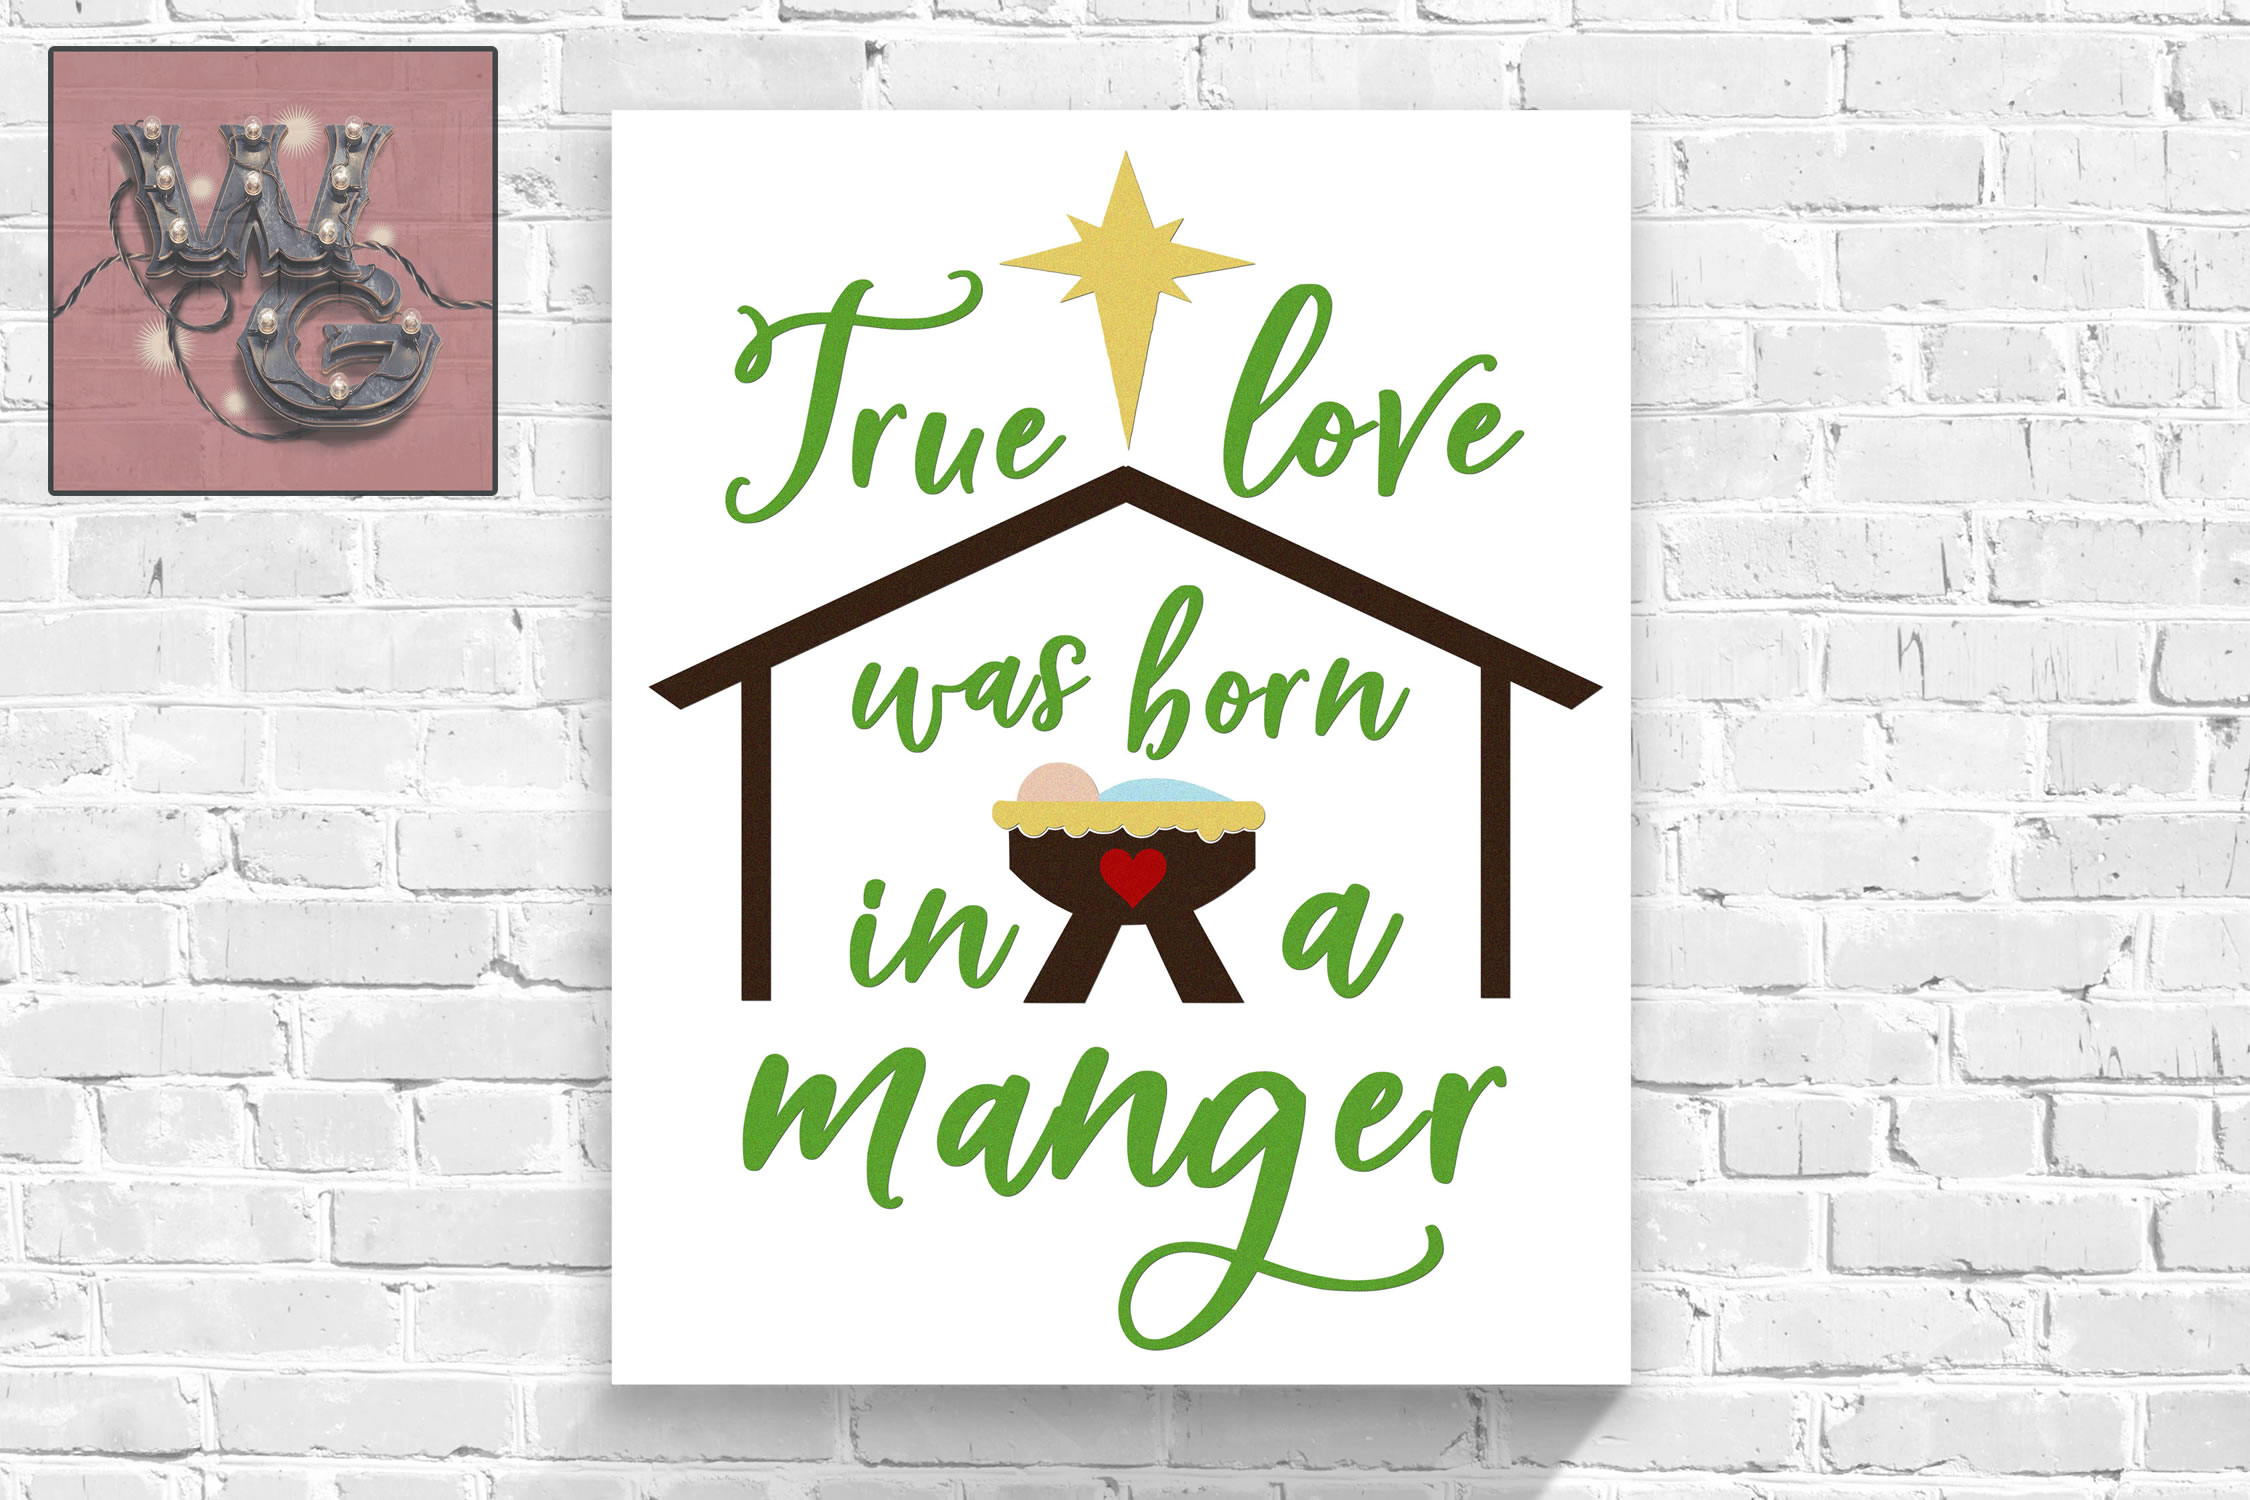 True Love Was Born In a Manger SVG DXF PNG JPG Comm example image 1